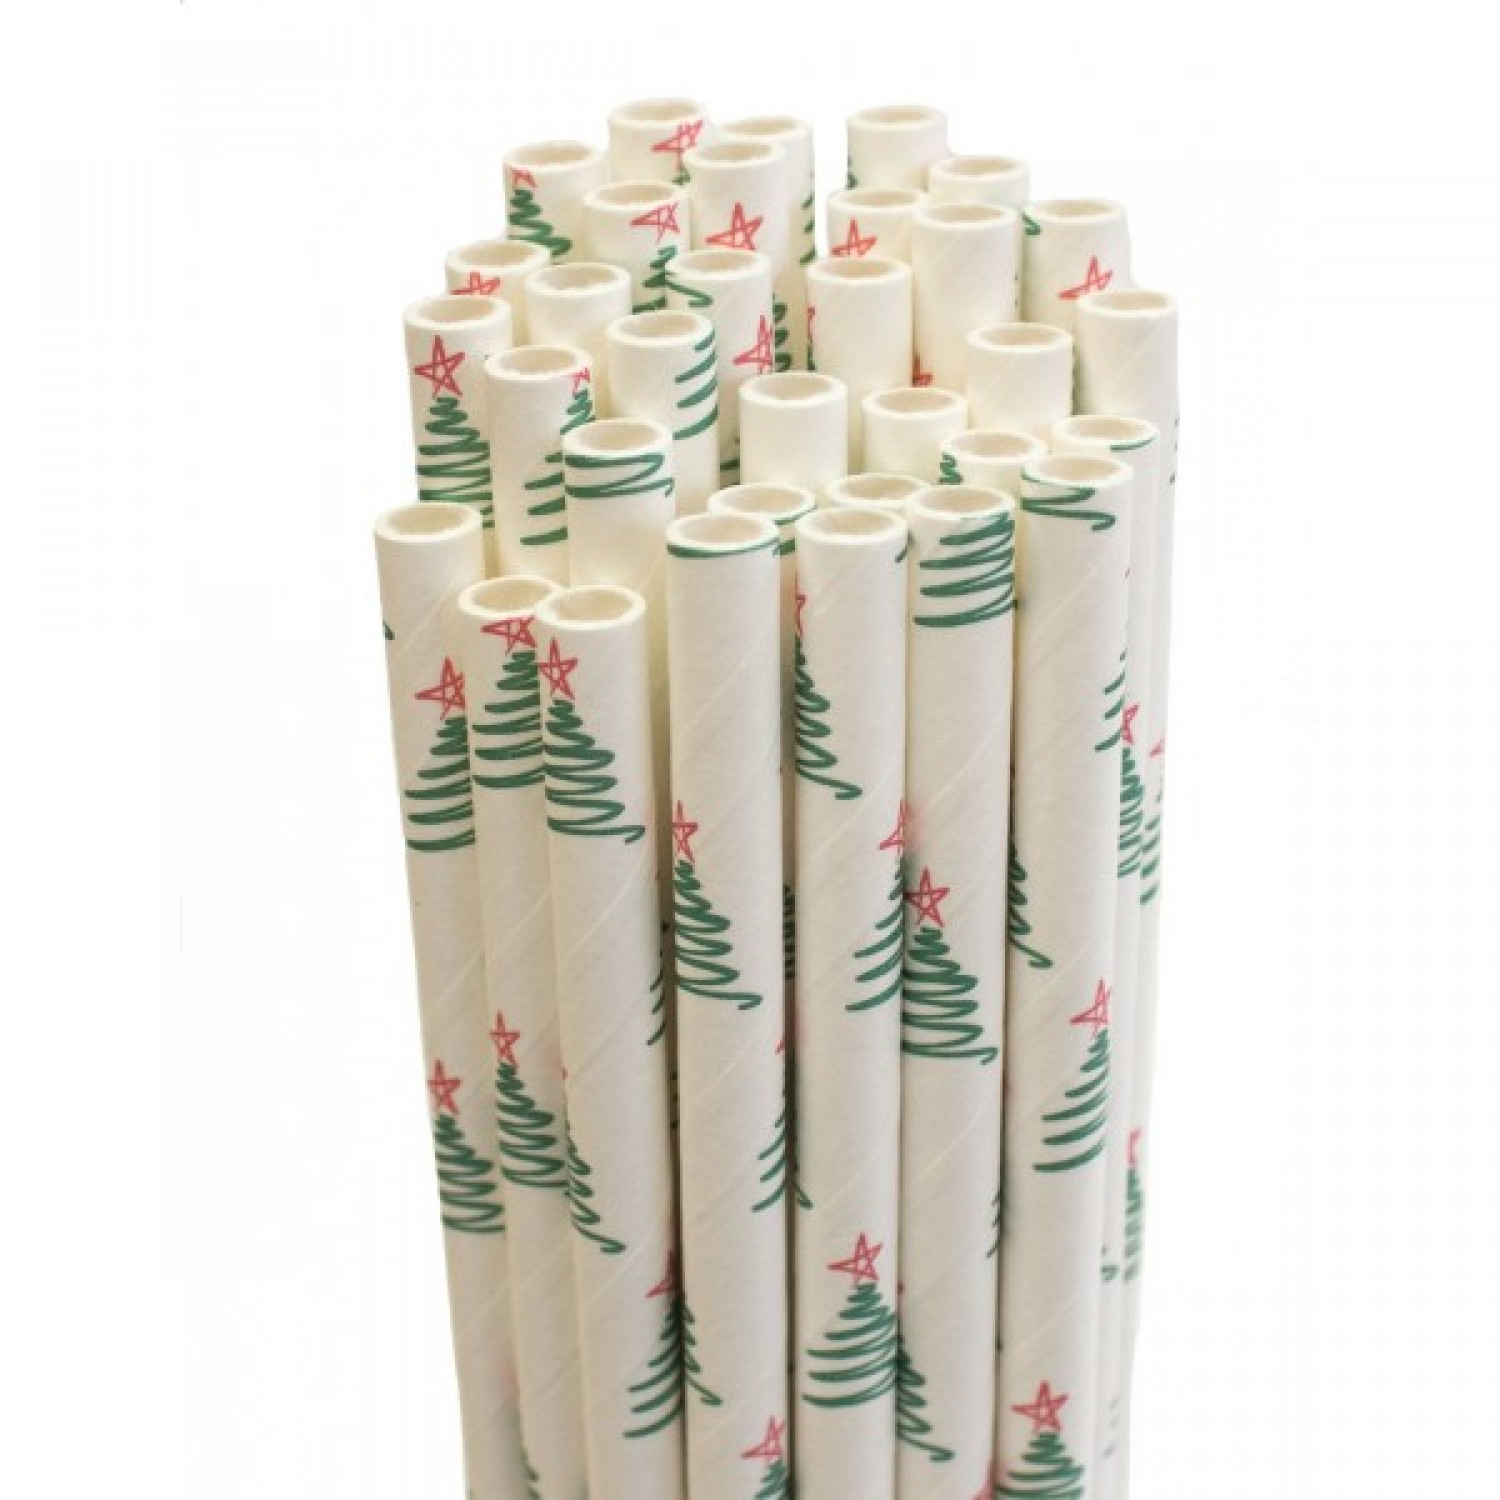 Paper Drinking Straw – Christmas Trees